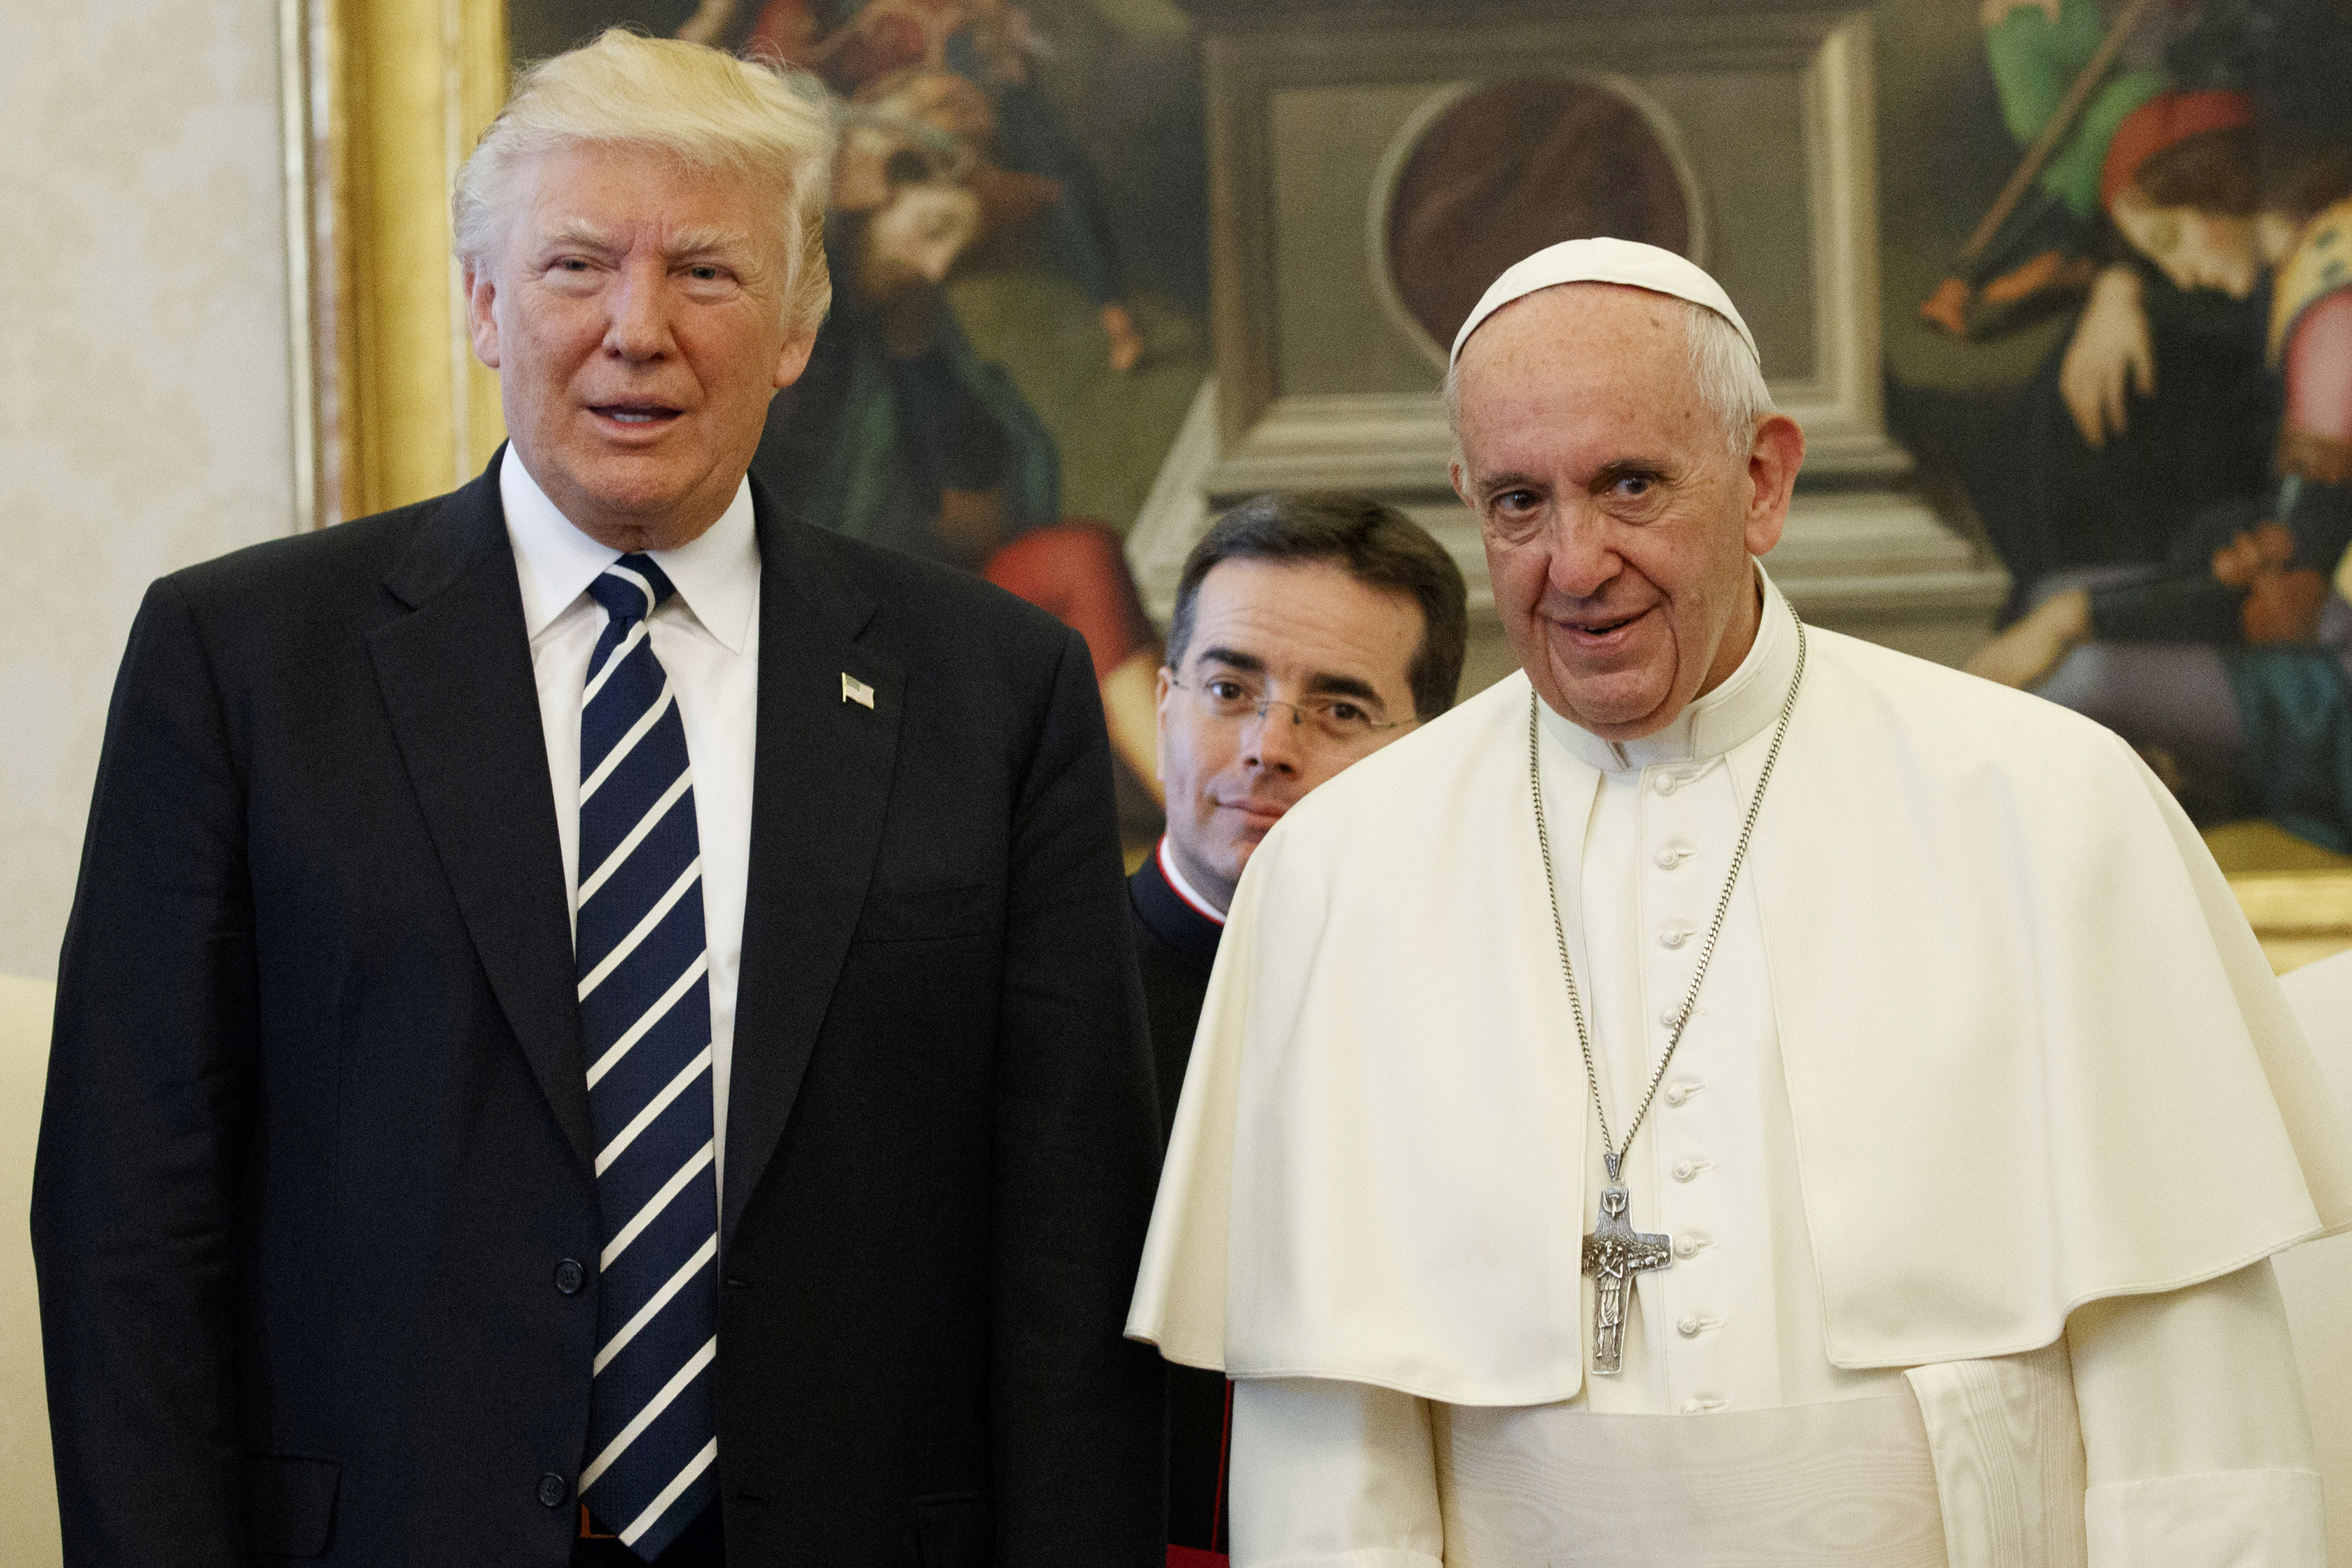 President Trump and Pope Francis meet at the Vatican, May 24, 2017.